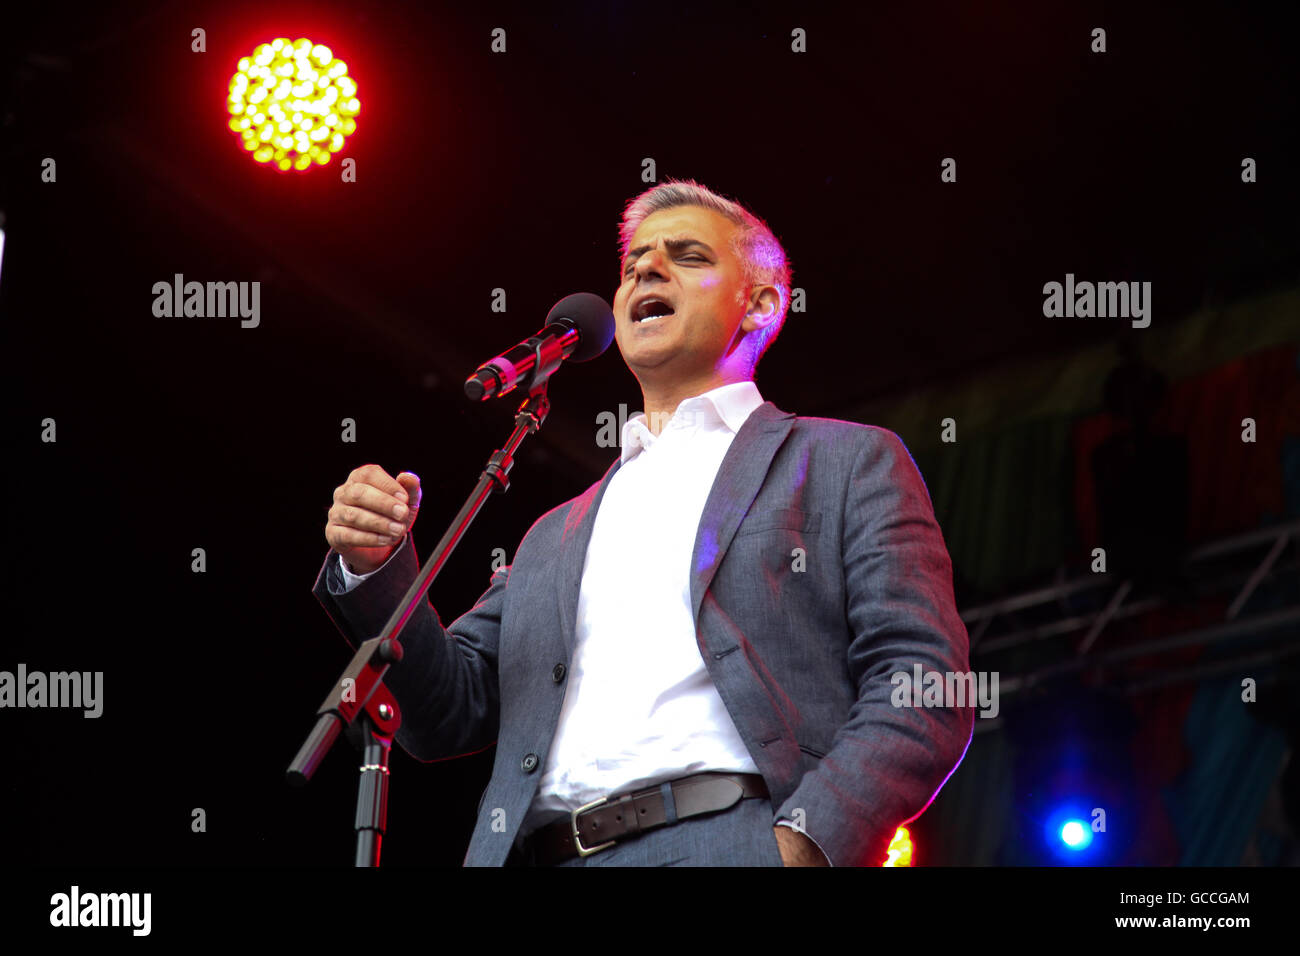 London, UK. 9th July, 2016. Mayor of London, Sadiq Khan, addresses a large crowds during Eid celebrations in Trafalgar - Stock Image